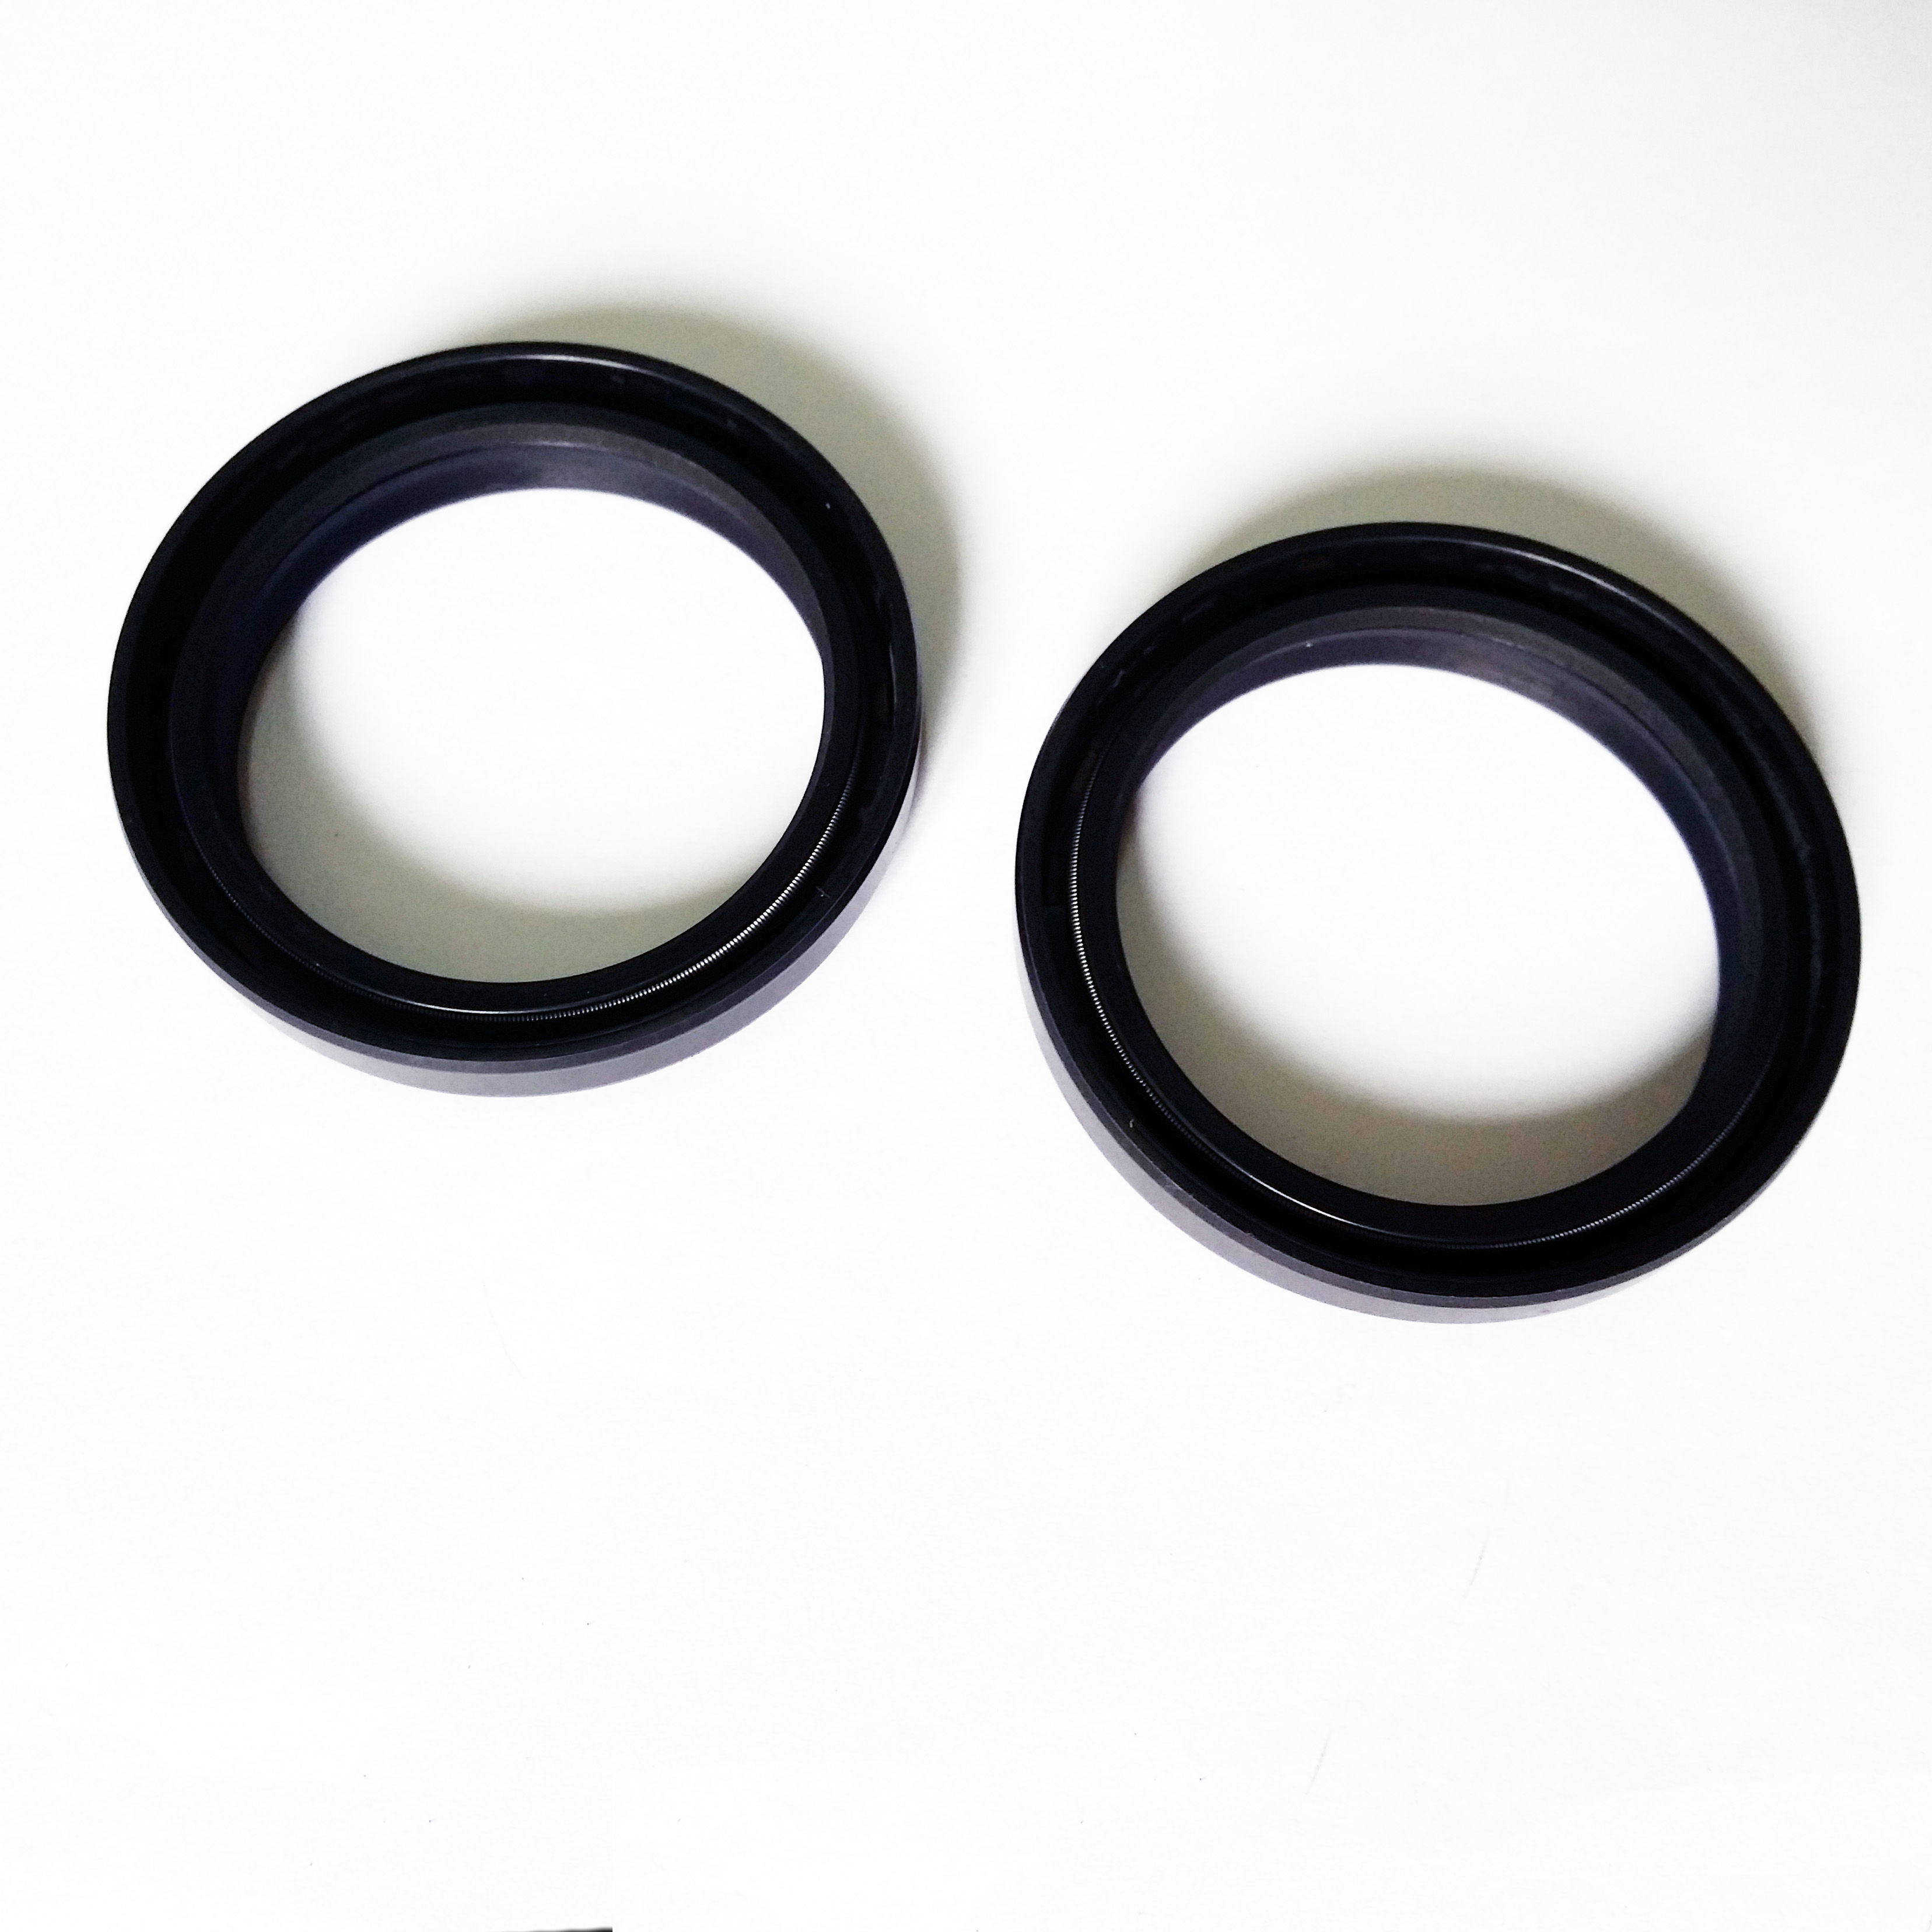 K-Tech KTM 530 EXC-F 2007-2011 NOK Front Fork Oil Seals